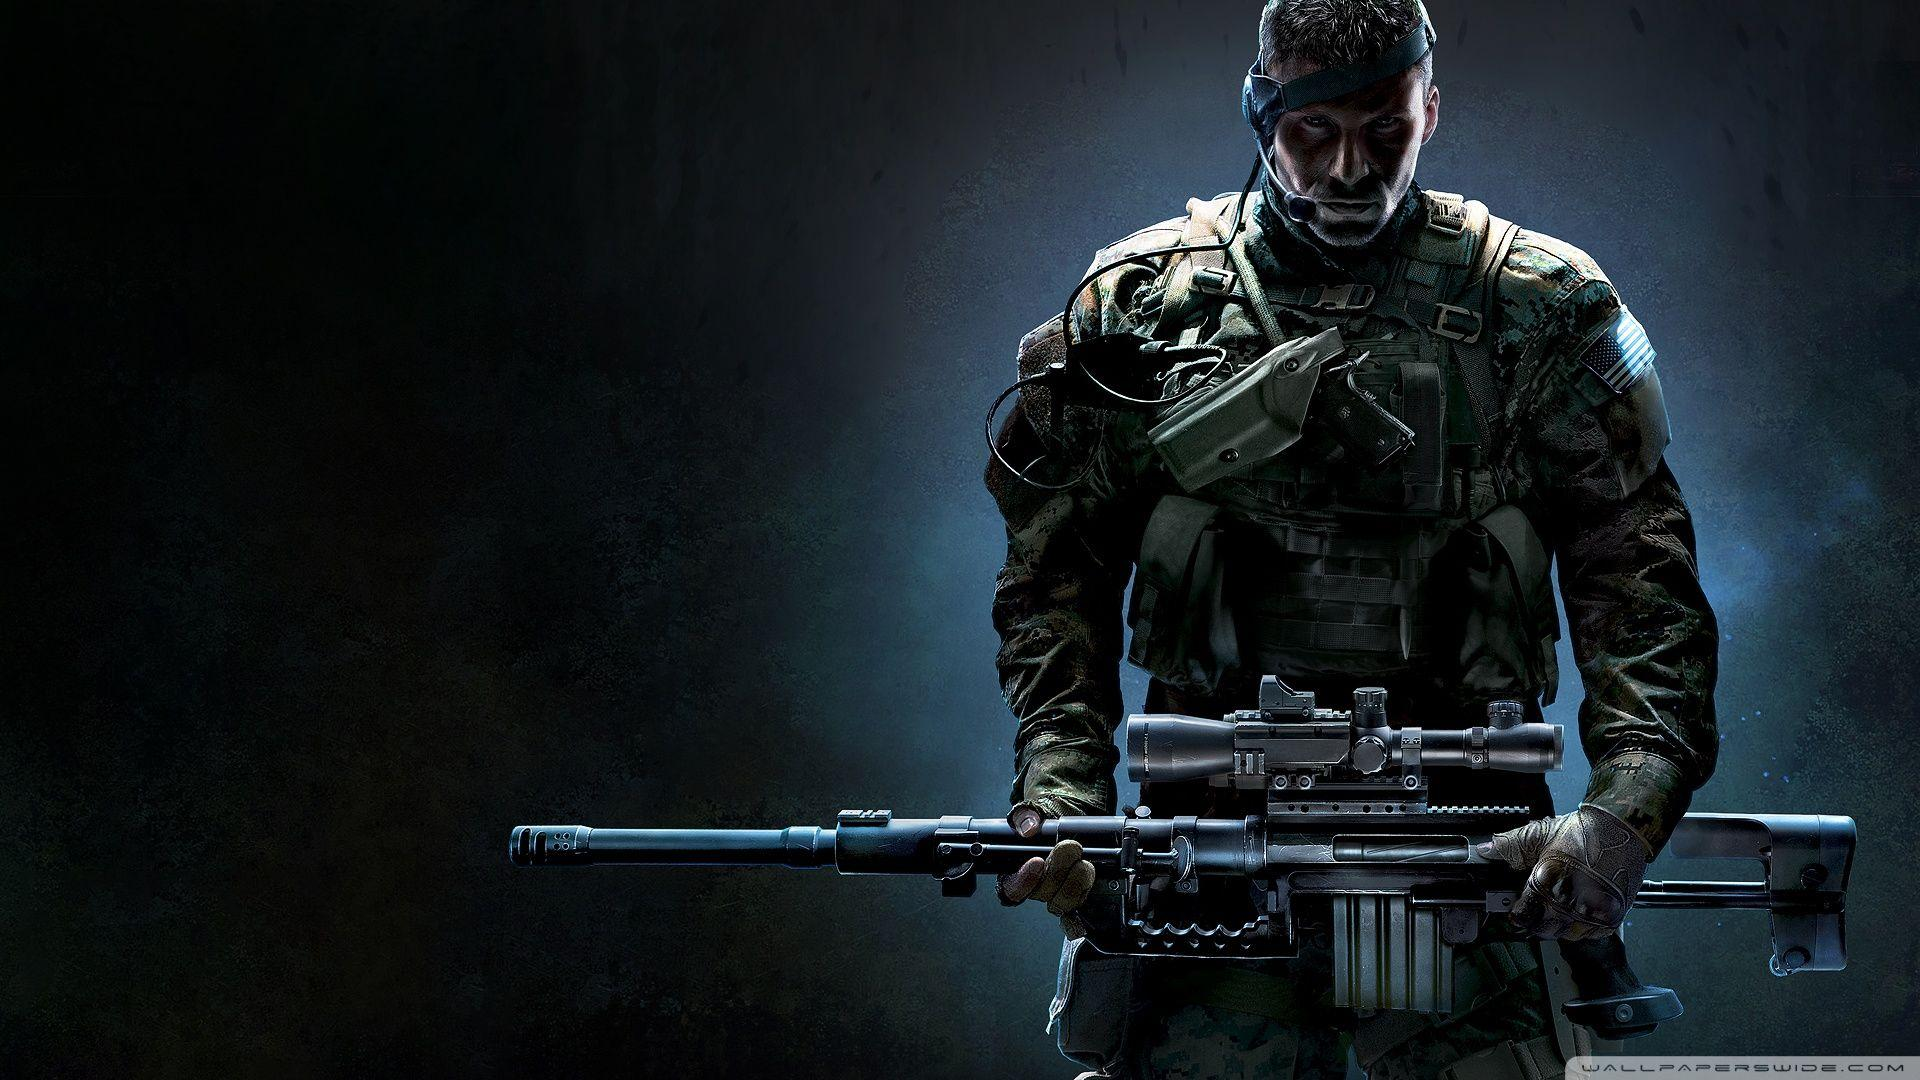 Sniper Ghost Warrior Wallpapers Wallpaper Cave